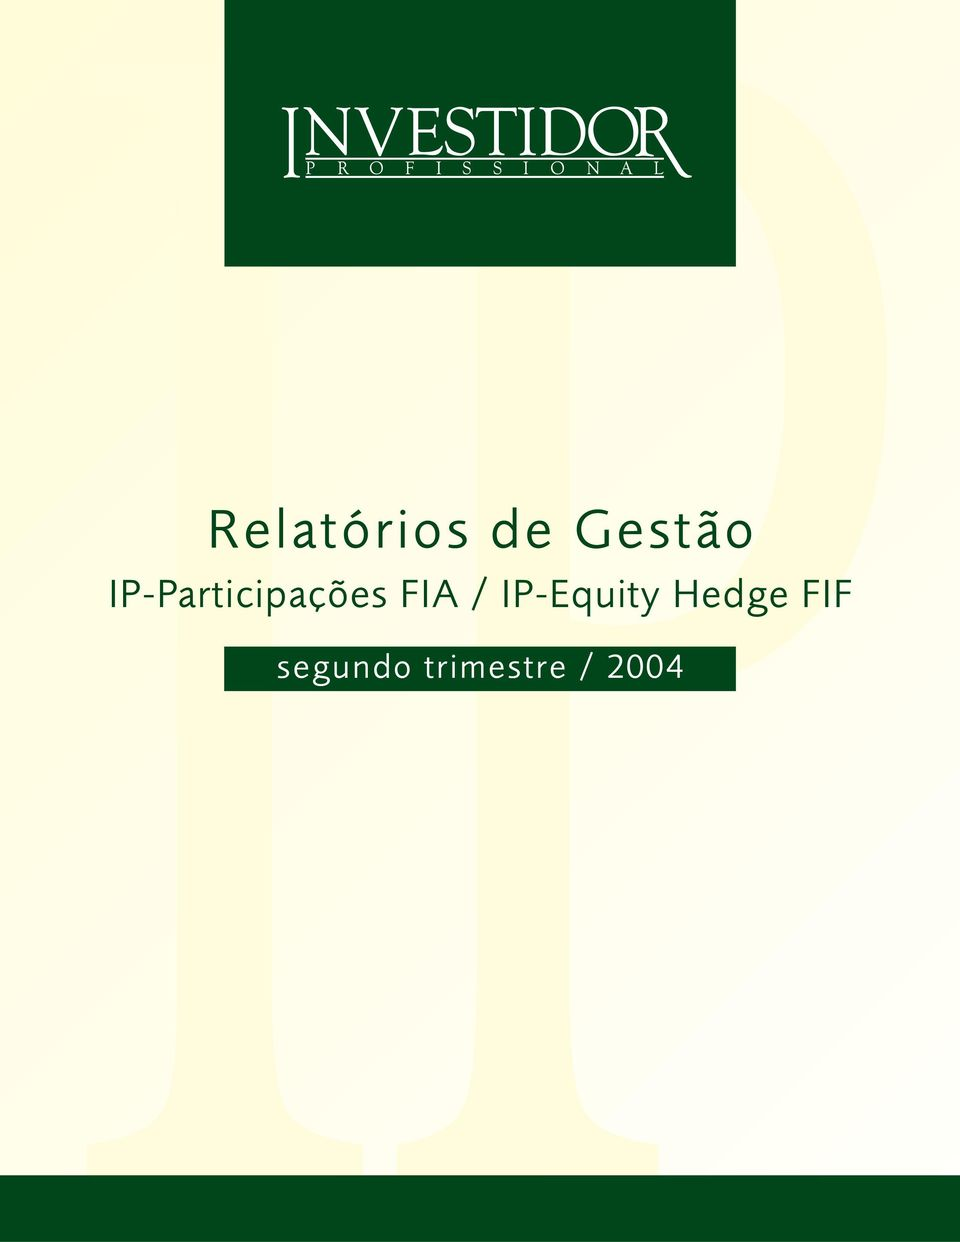 / IP-Equity Hedge FIF